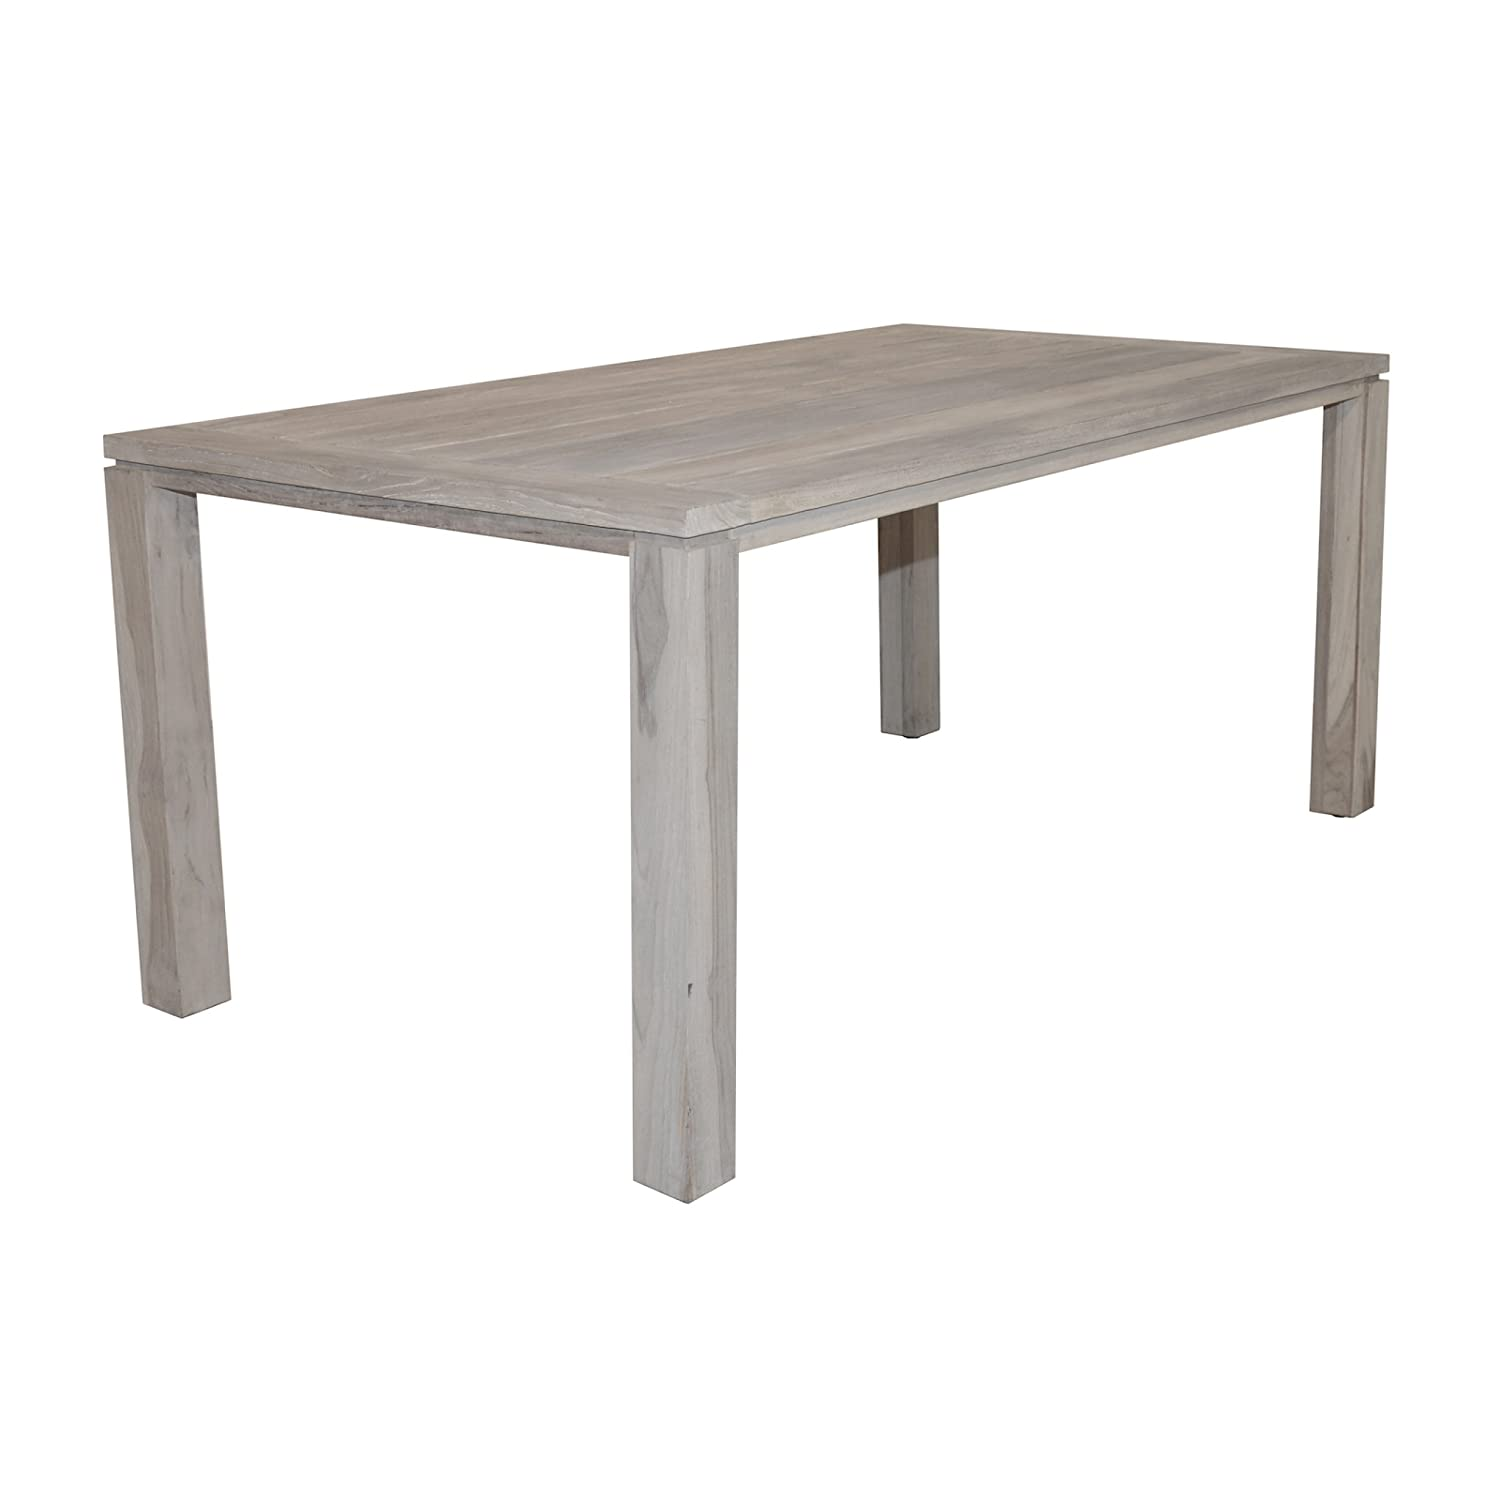 Aqua-Saar Dining Table little Amsterdam Teaktisch 180 x 95 cm Teakholz AS95598 kaufen